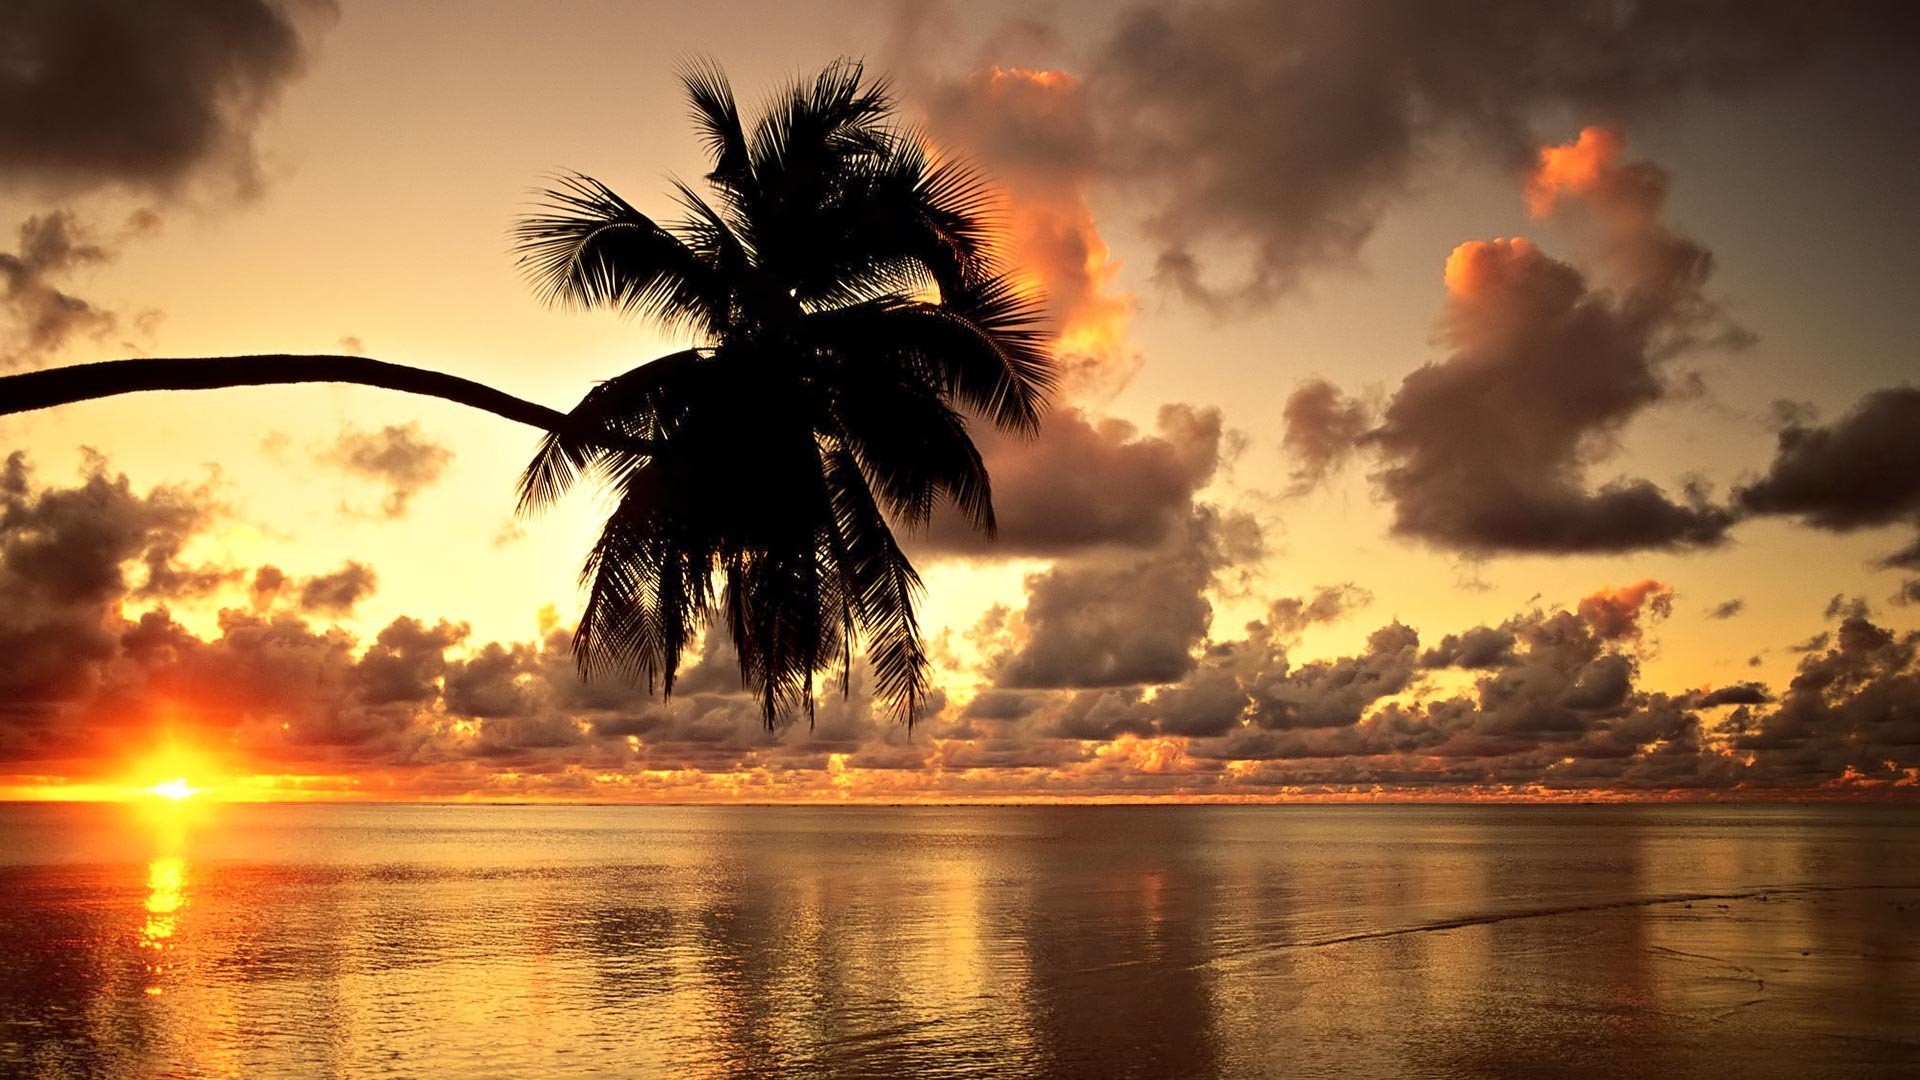 Hawaiian Sunset HD Beach Wallpapers 1080p HD Wallpapers Source 1920x1080